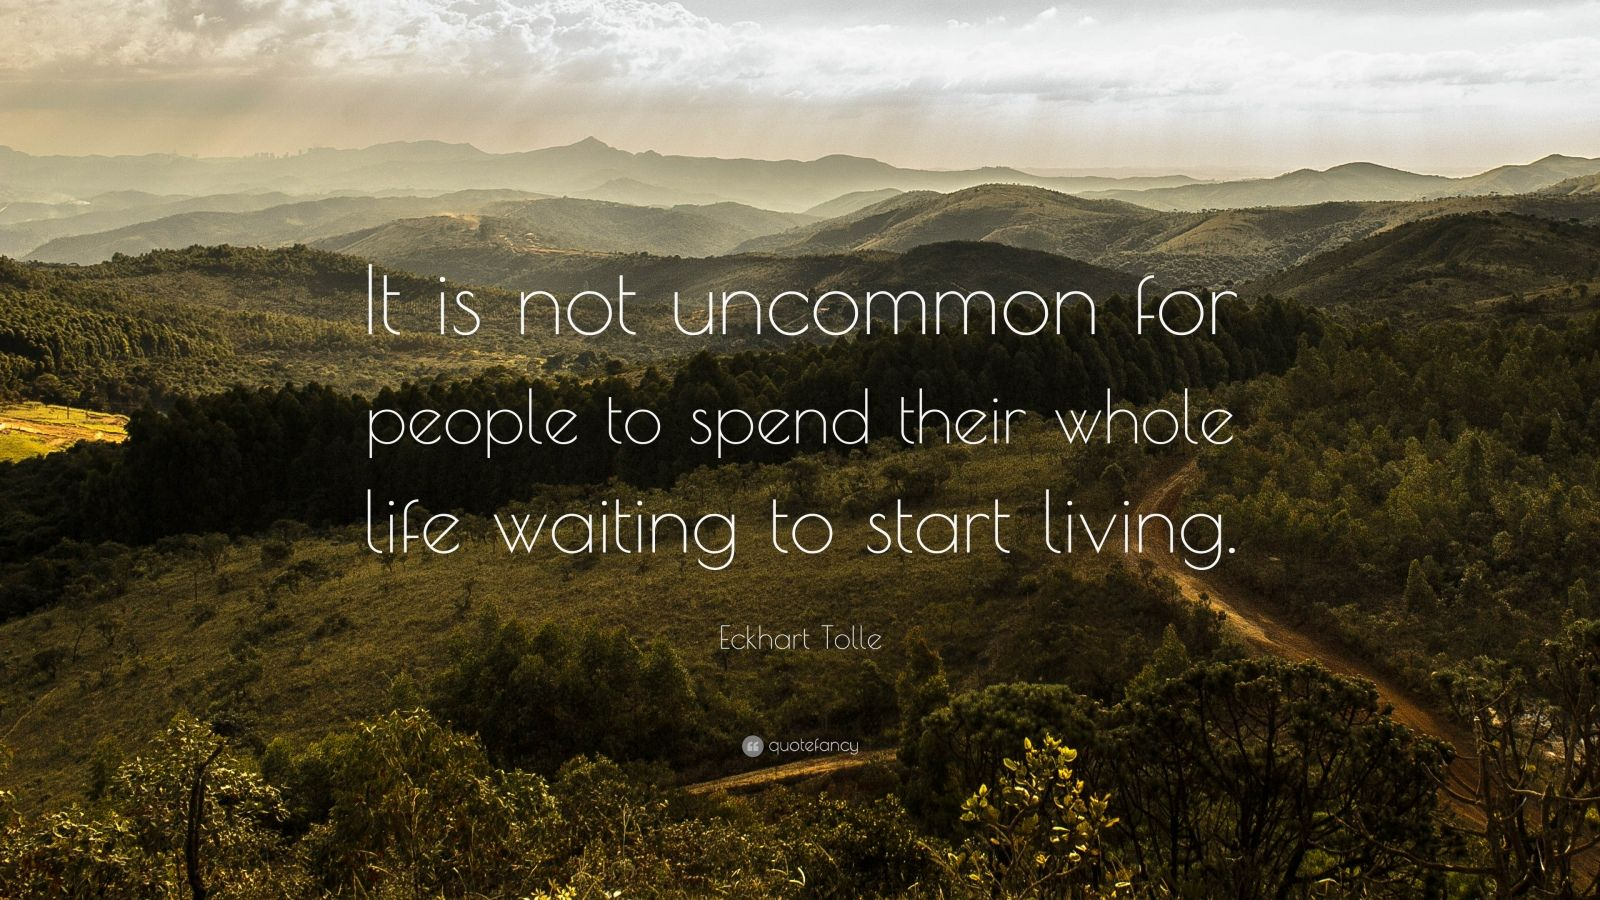 """Eckhart Tolle Quote: """"It is not uncommon for people to spend their whole life waiting to start living."""""""